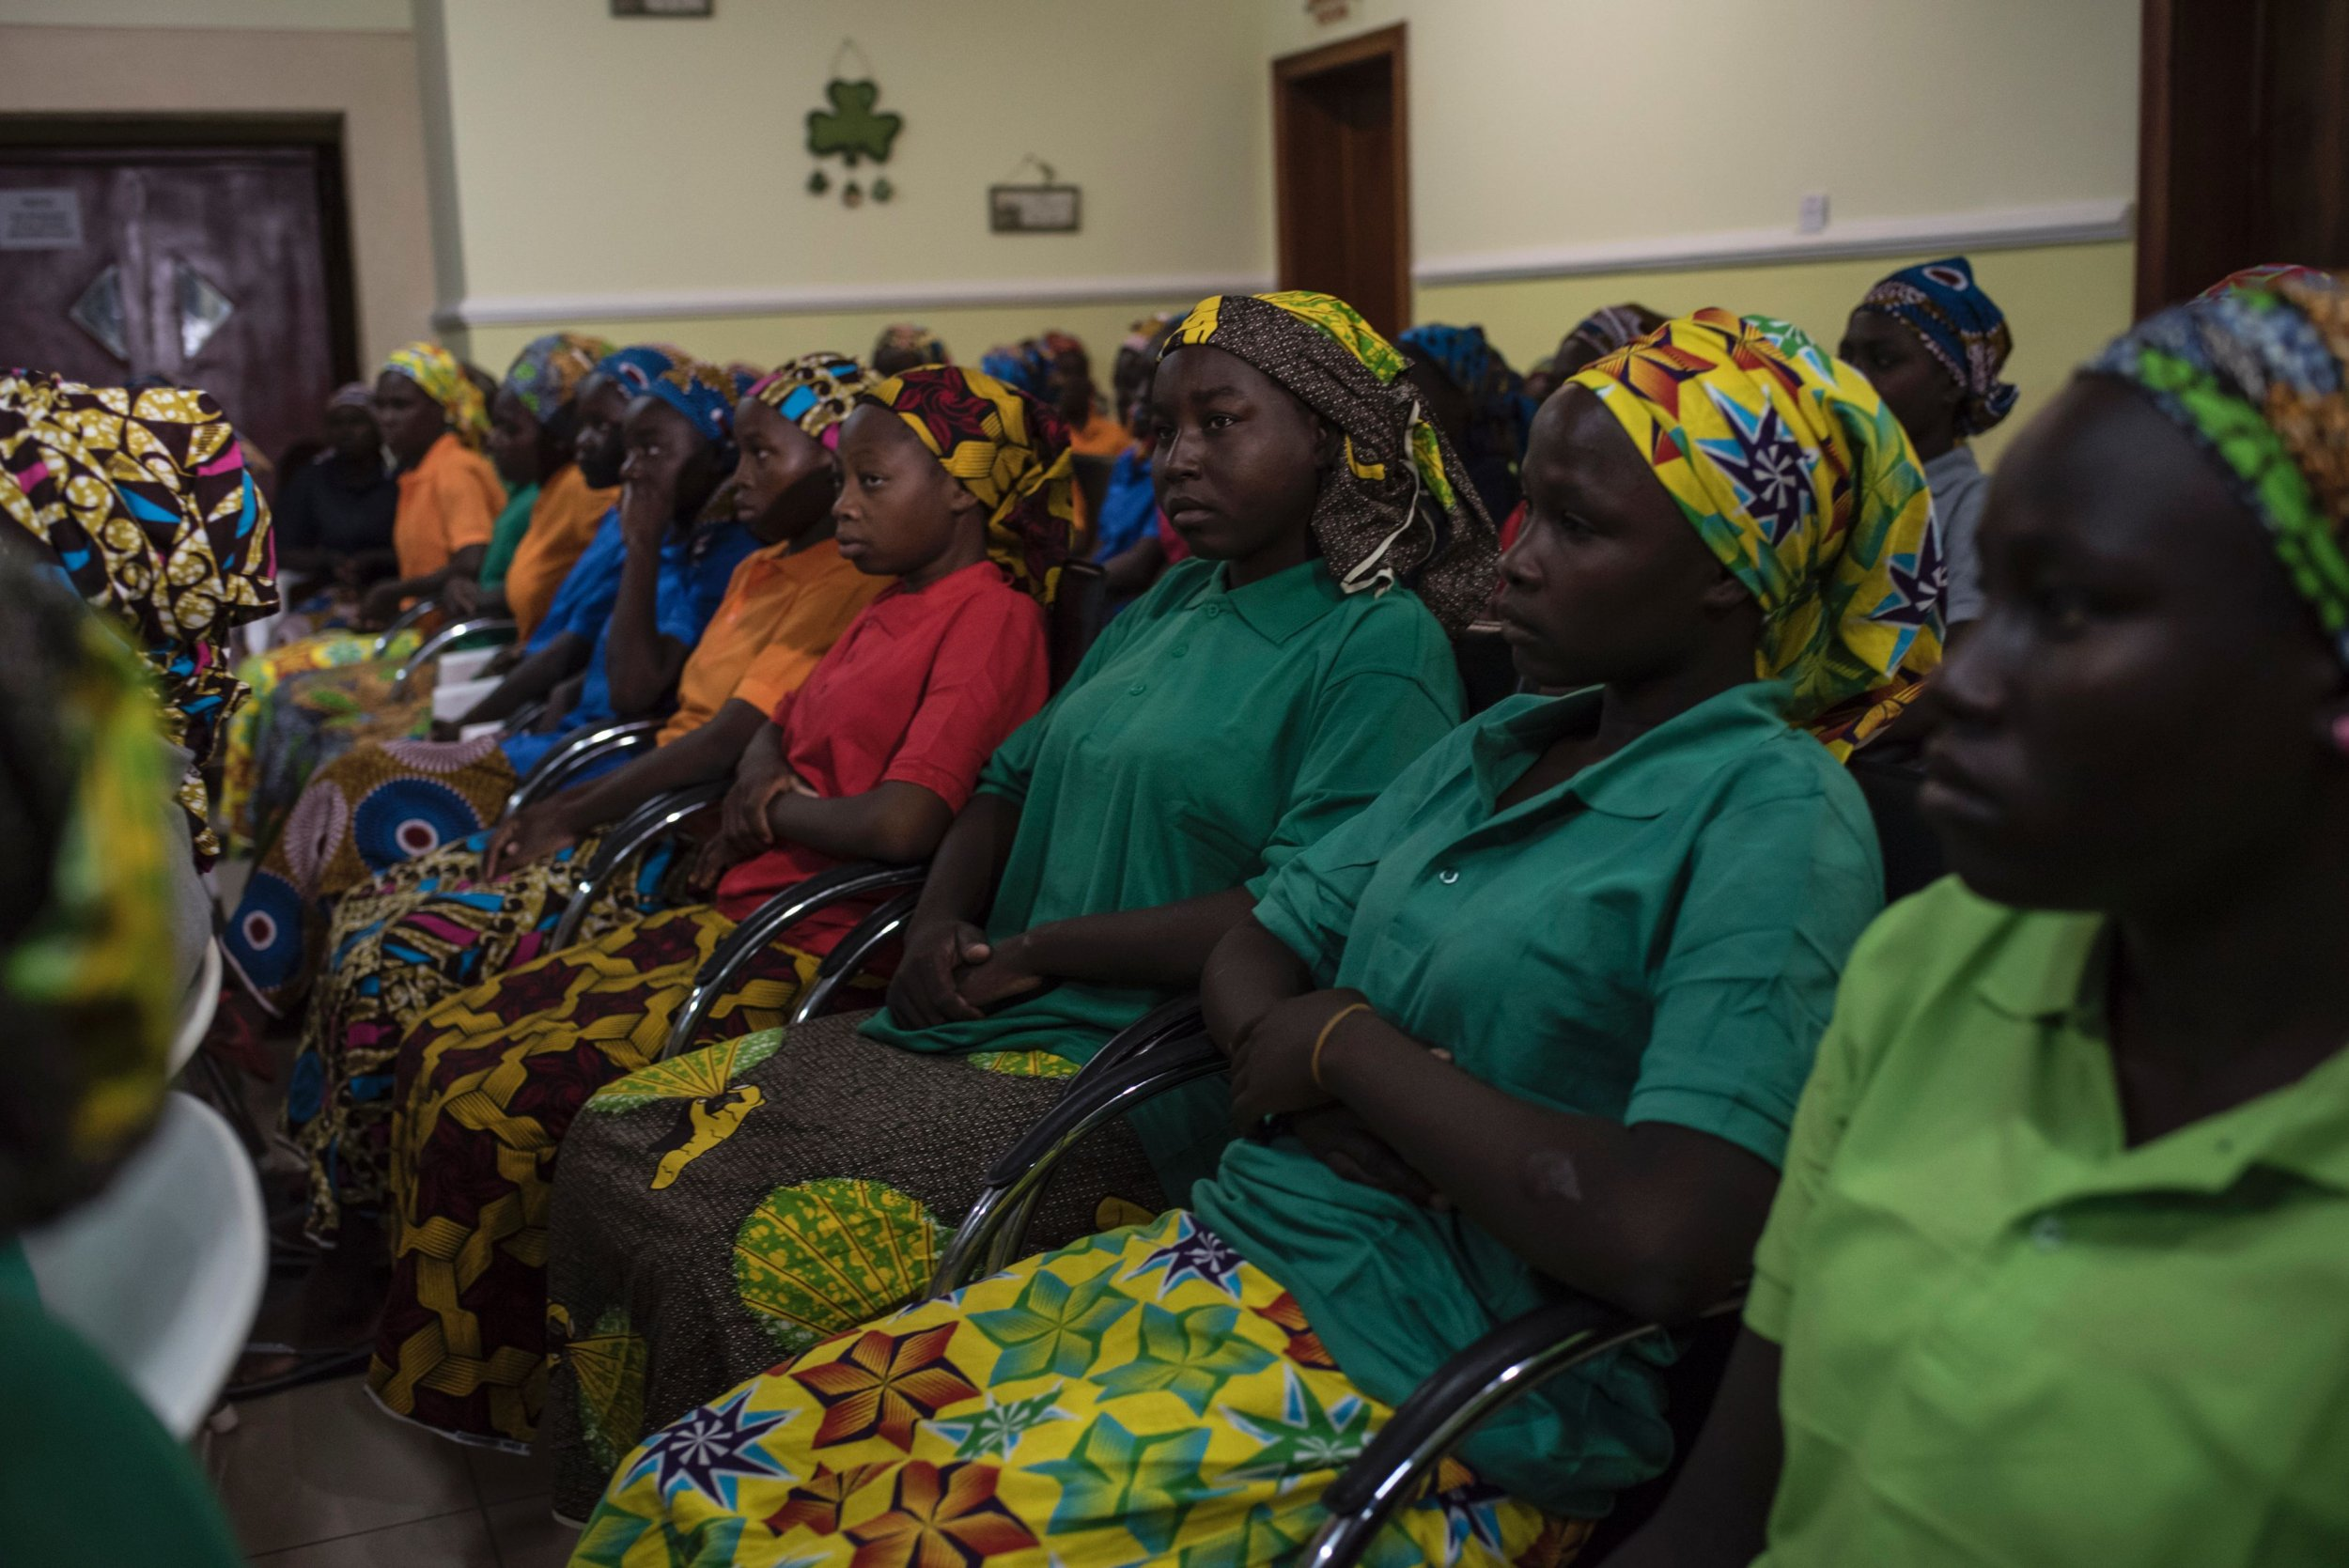 Chibok girls released